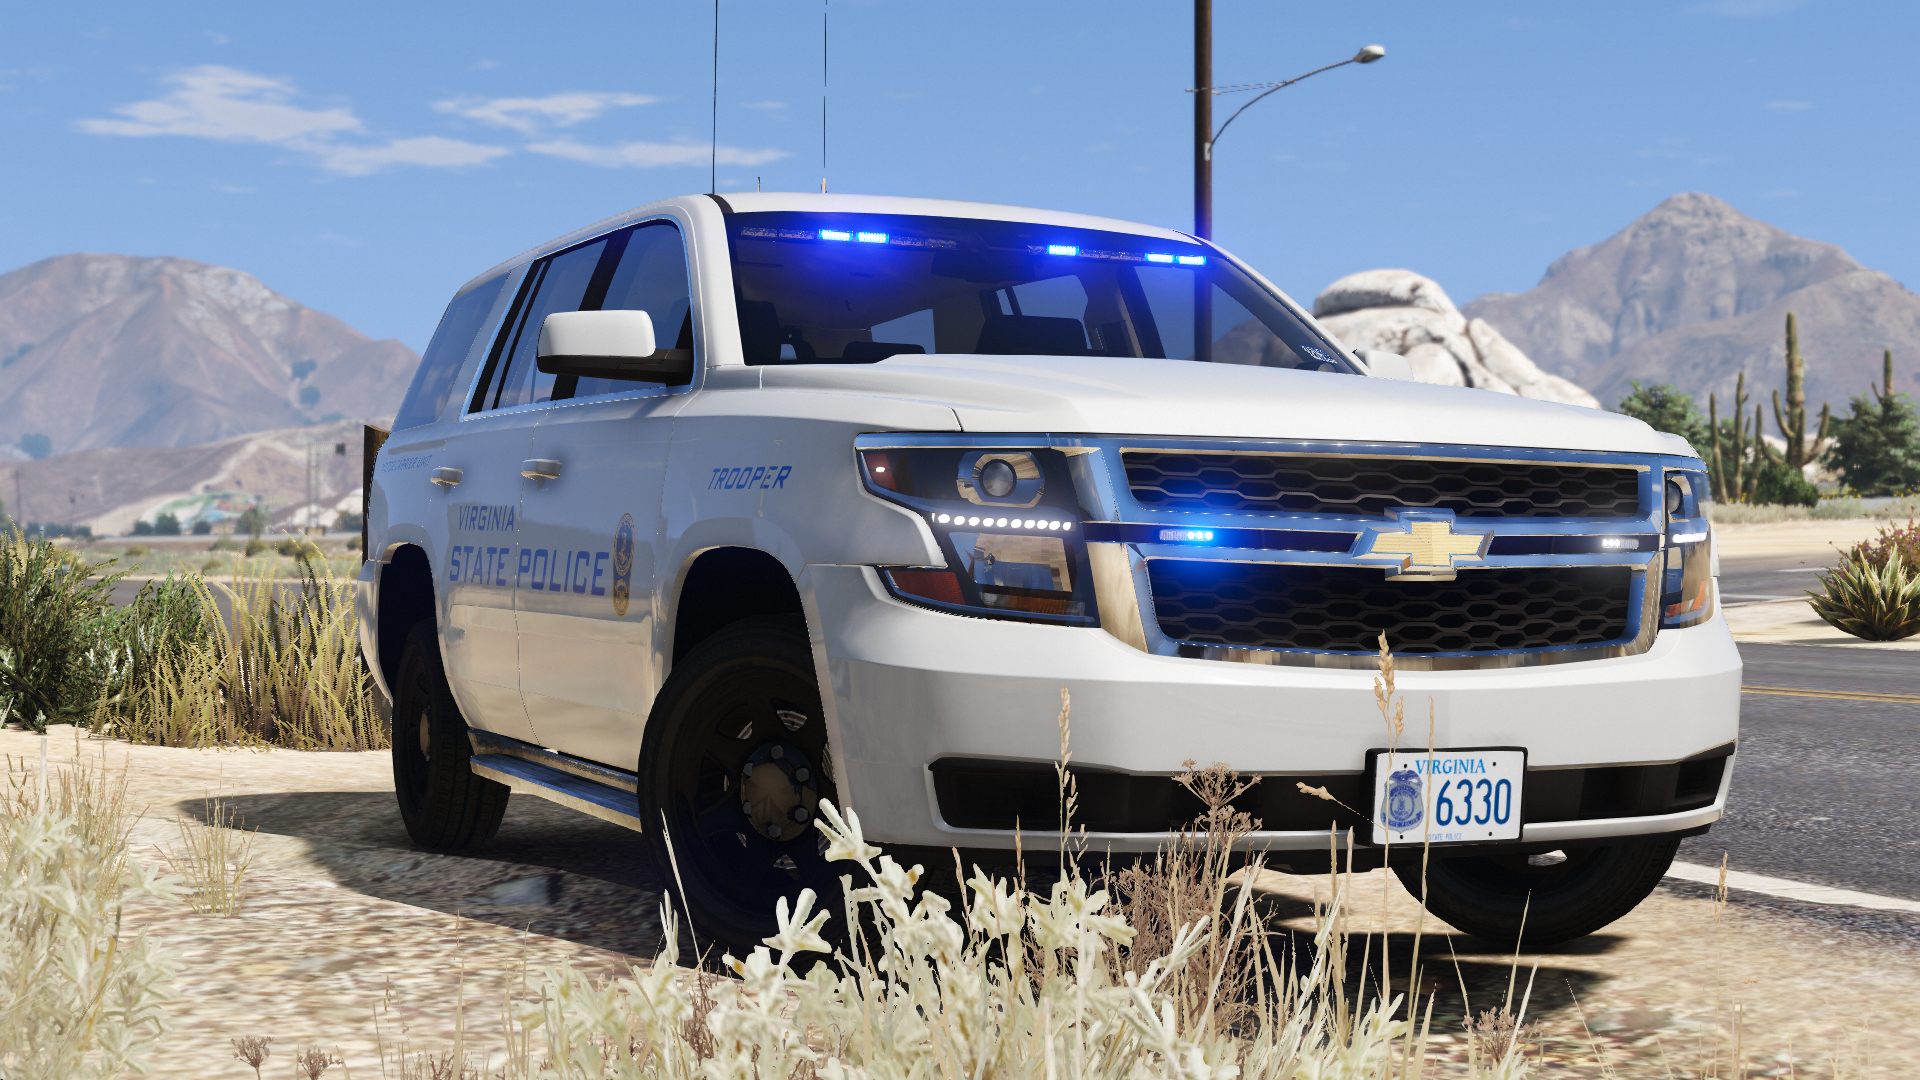 2019 Chevy Tahoe PPV- Virginia State Police